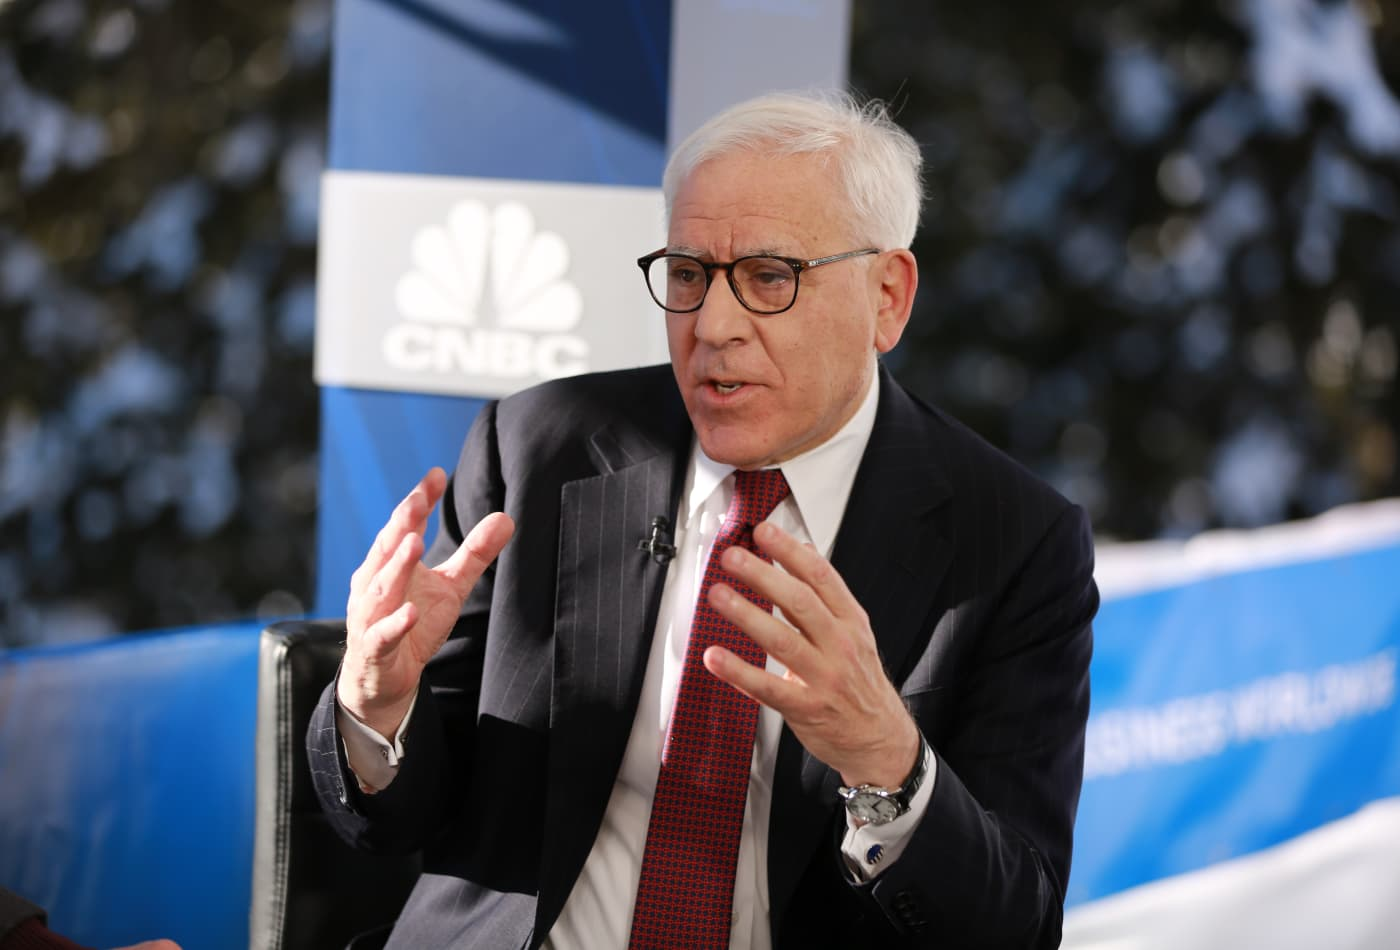 Carlyle's David Rubenstein: Trump 'policies seem to be working' to boost the US economy